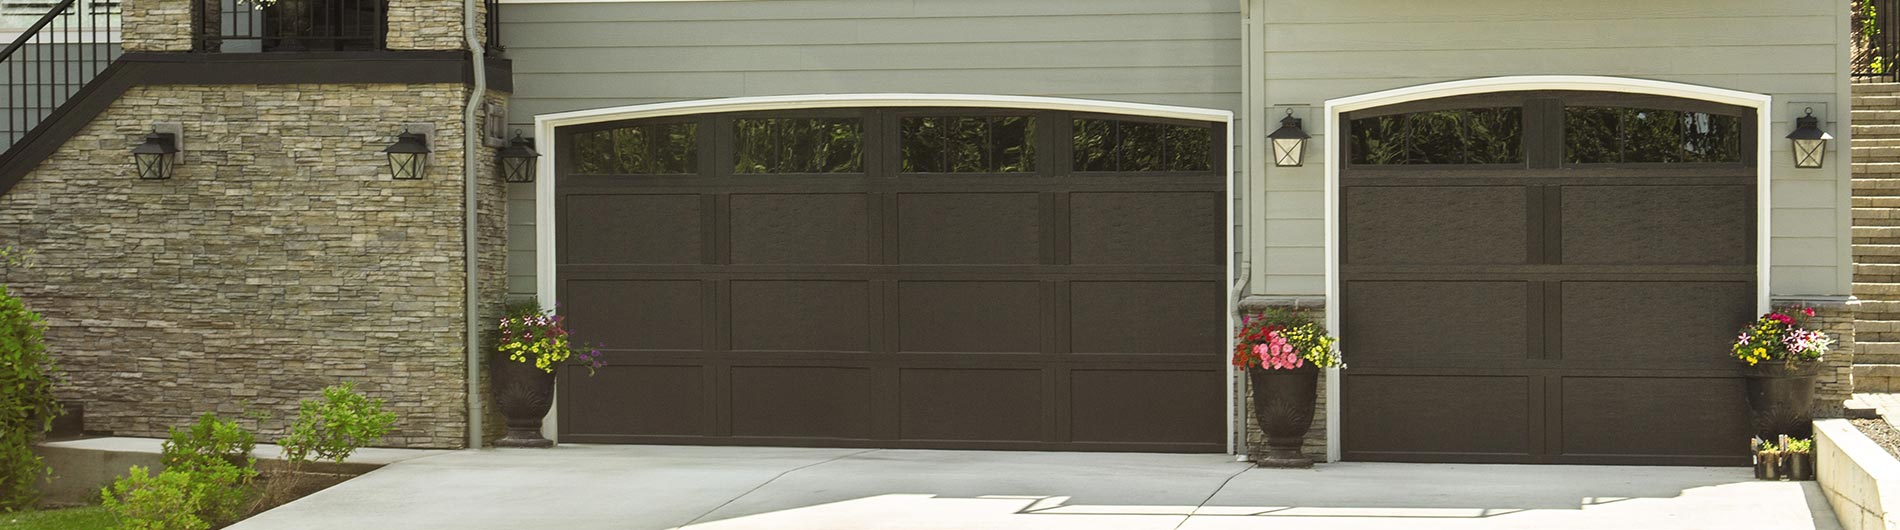 ... 9700-CH-Garage-Door; steel garage door & Carriage House Steel Garage Doors 9700